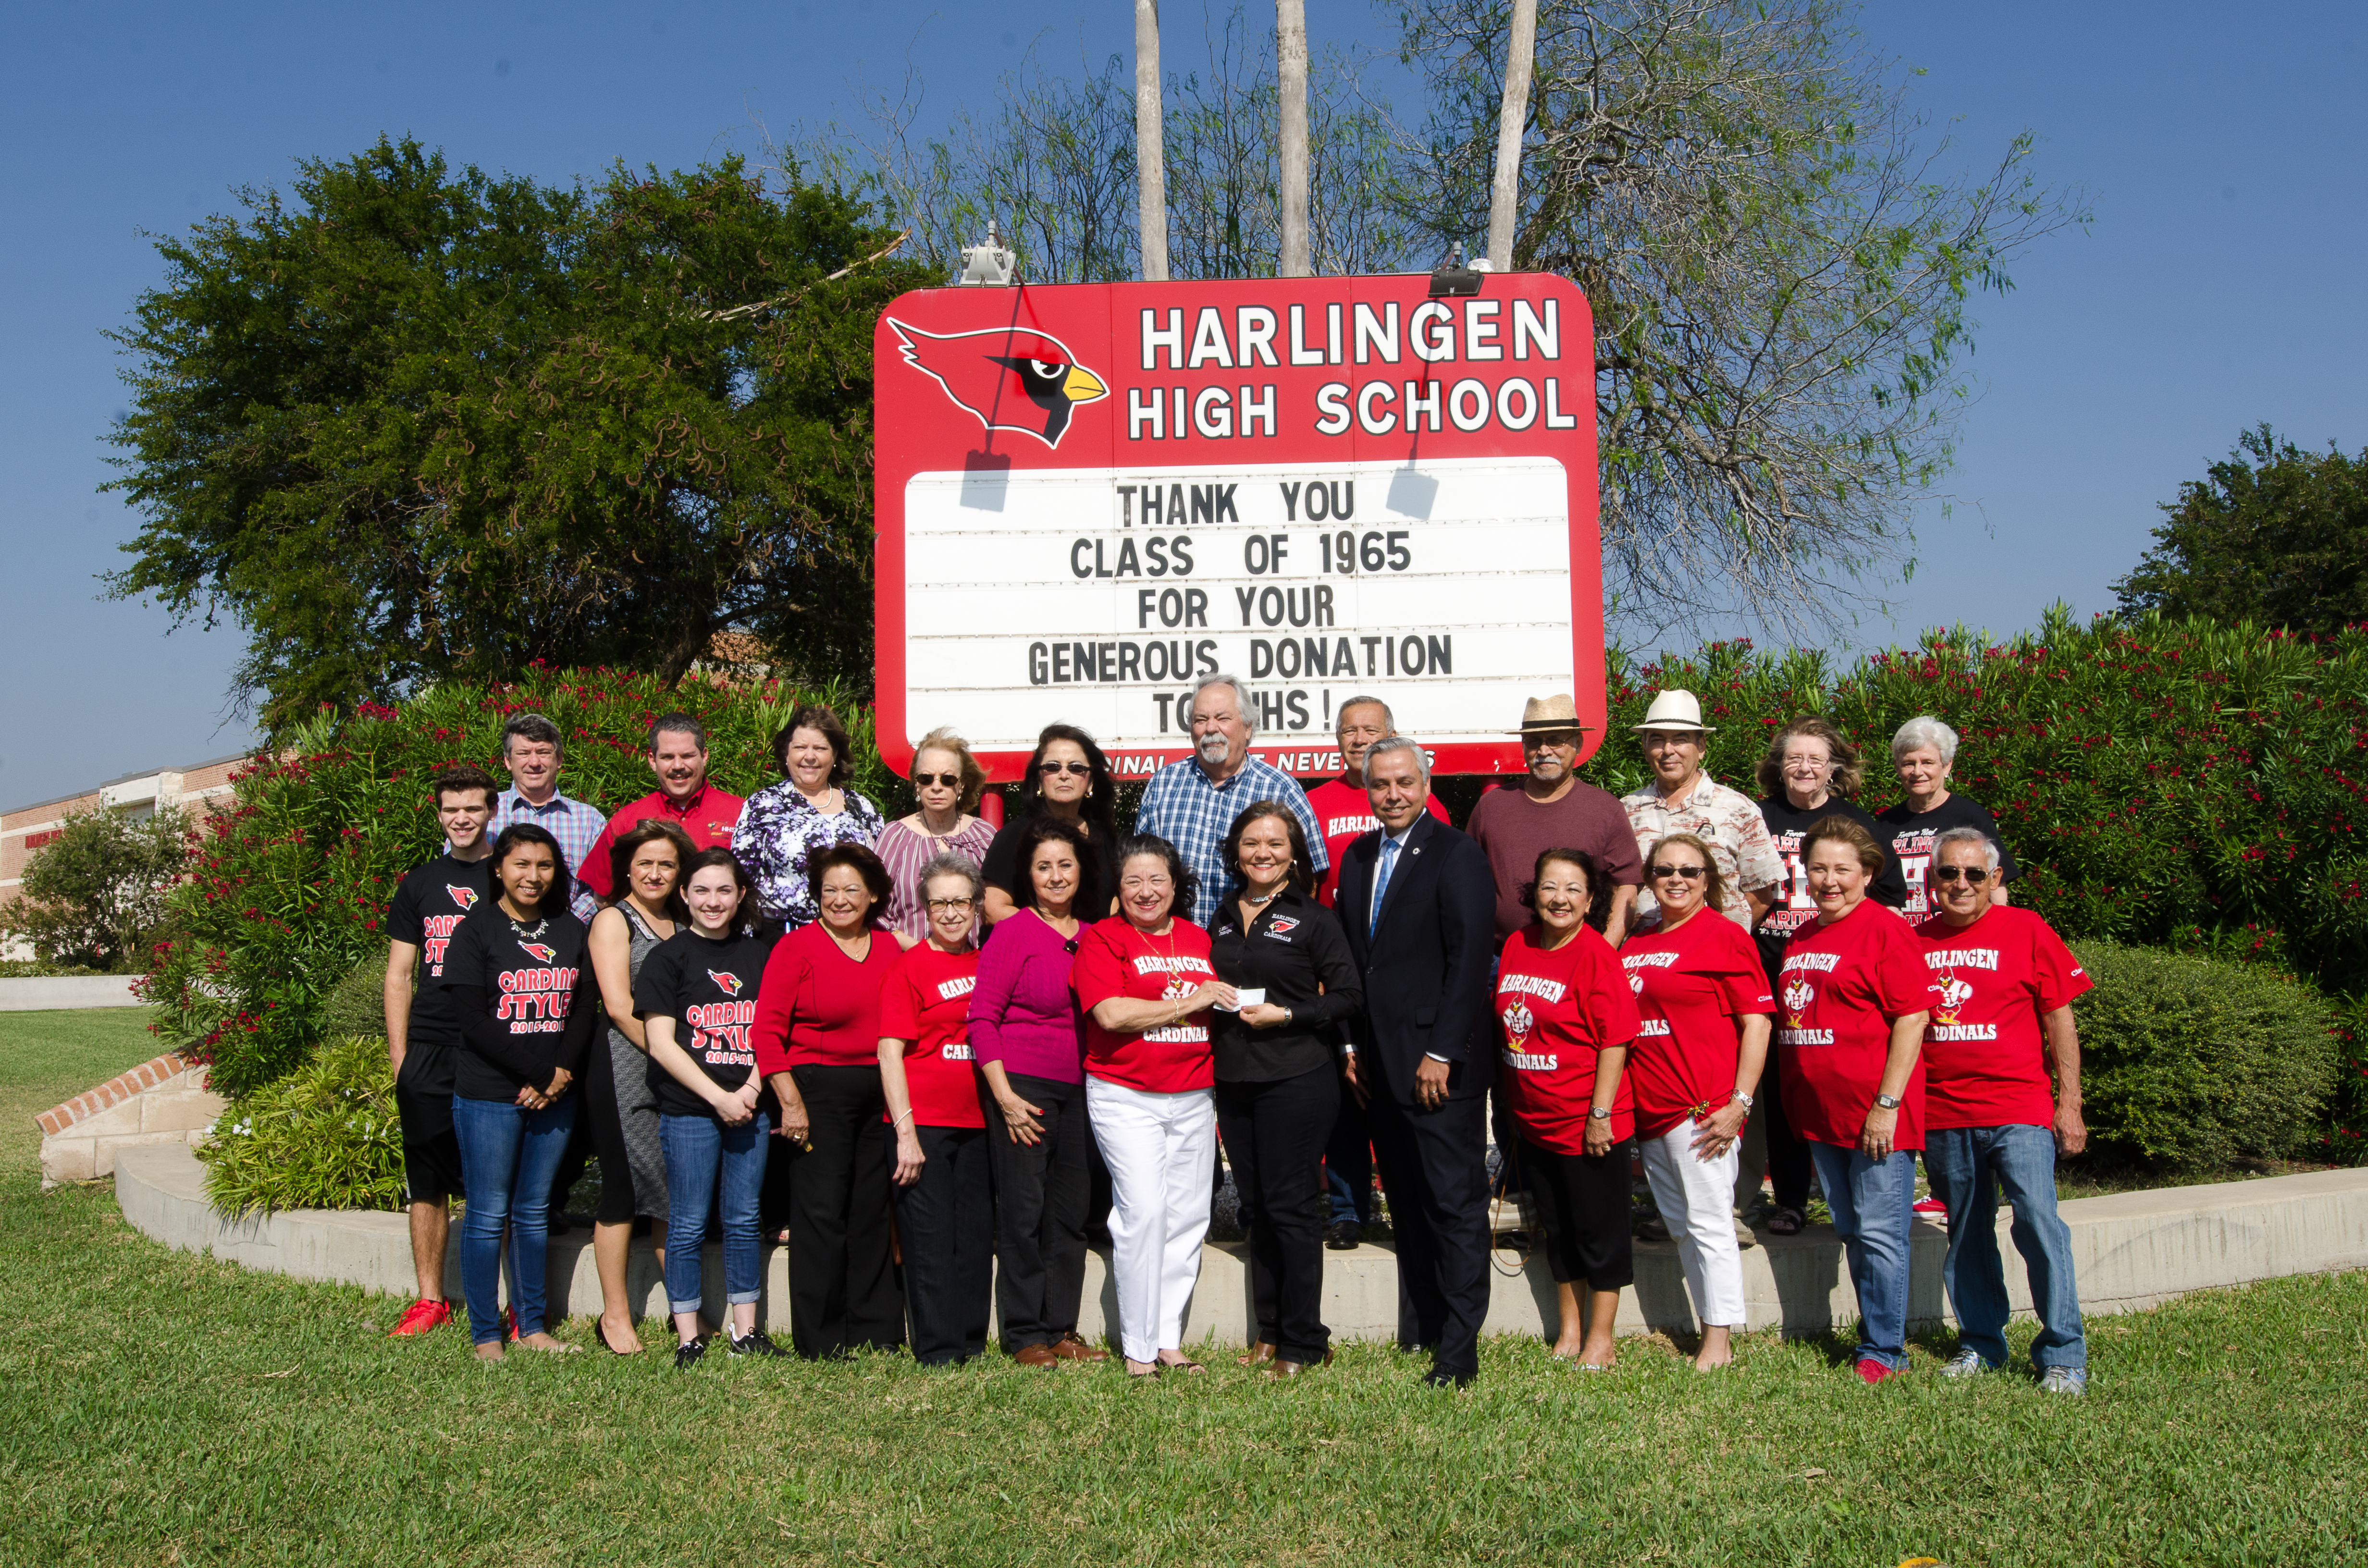 HHS Class of 1965 gives back to alma mater